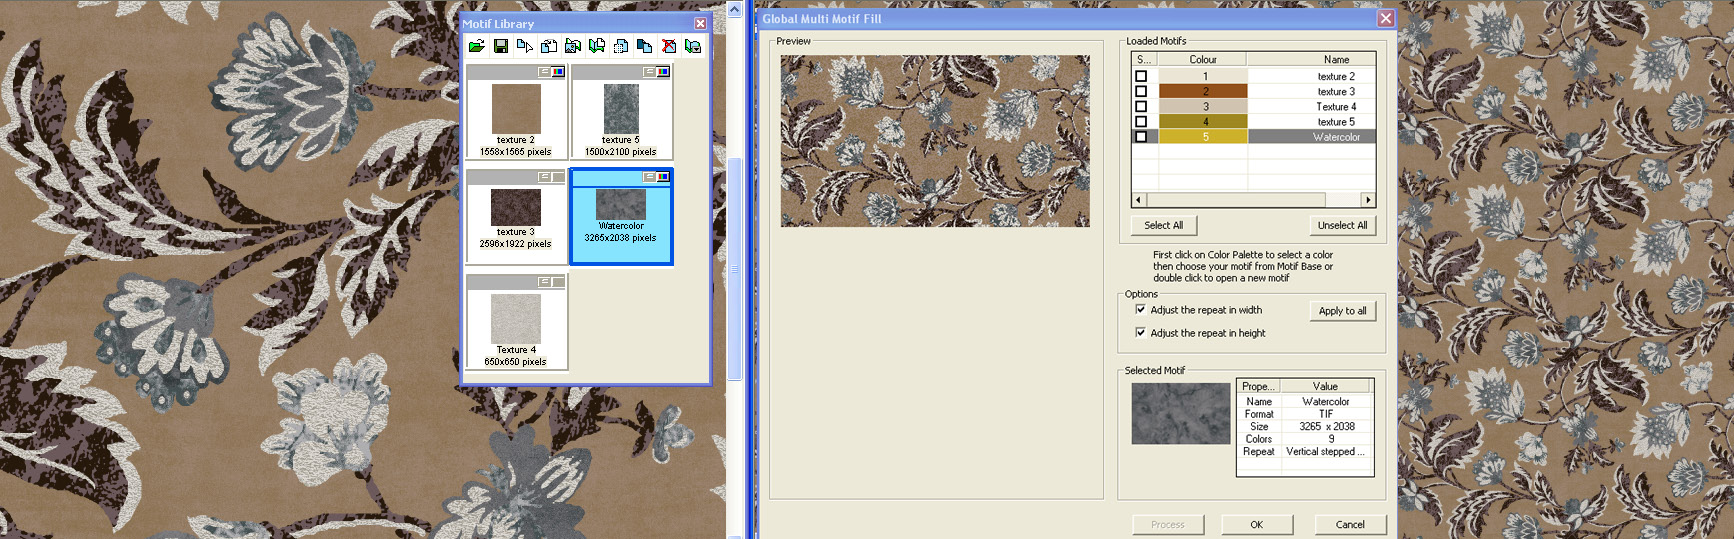 screen shot showing how to create designs with tones and textures on a brown and white floral design